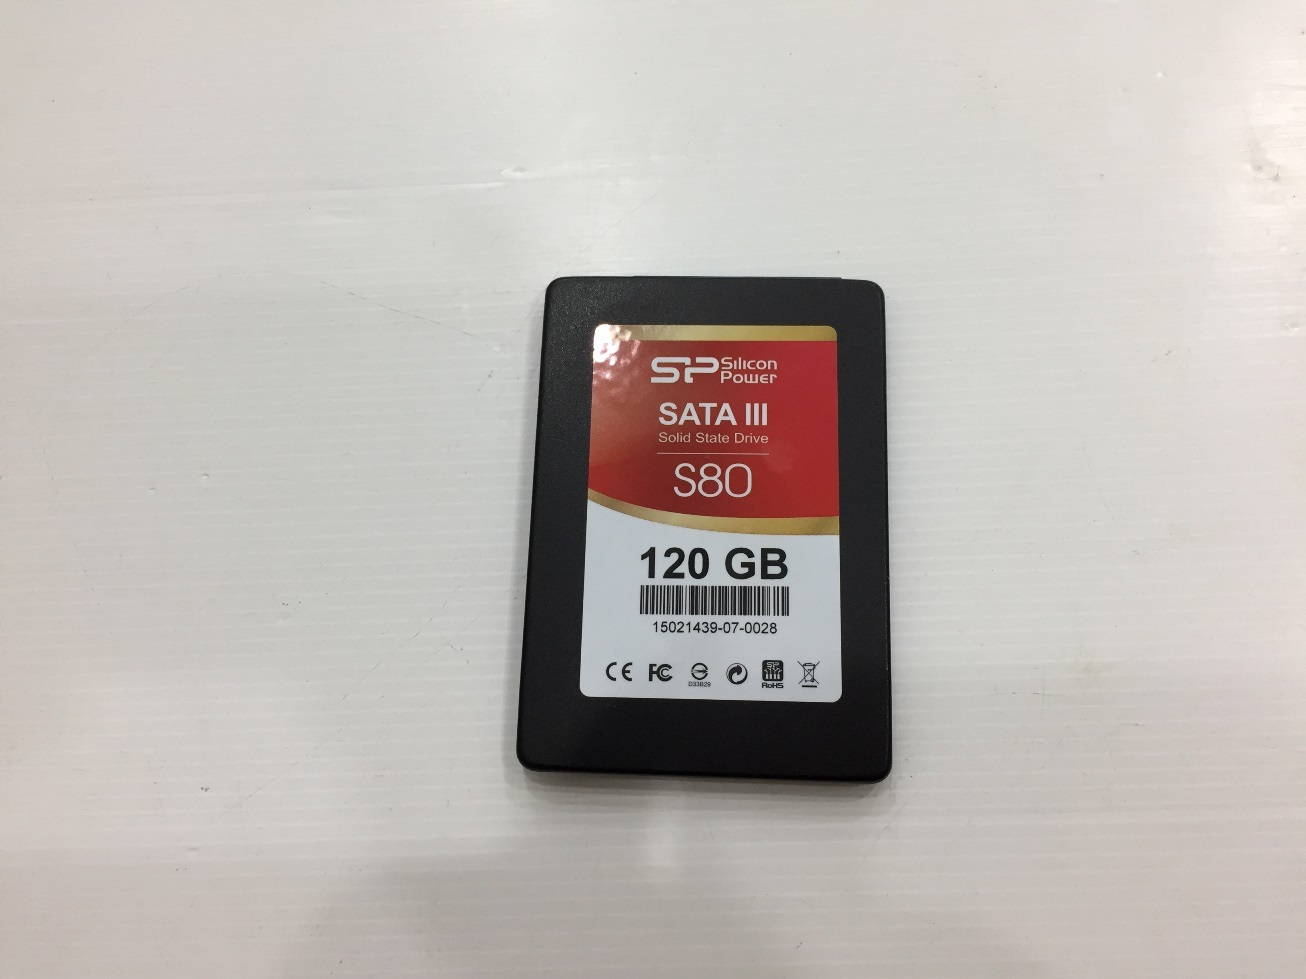 SSD 120GB. Silicon Power S80